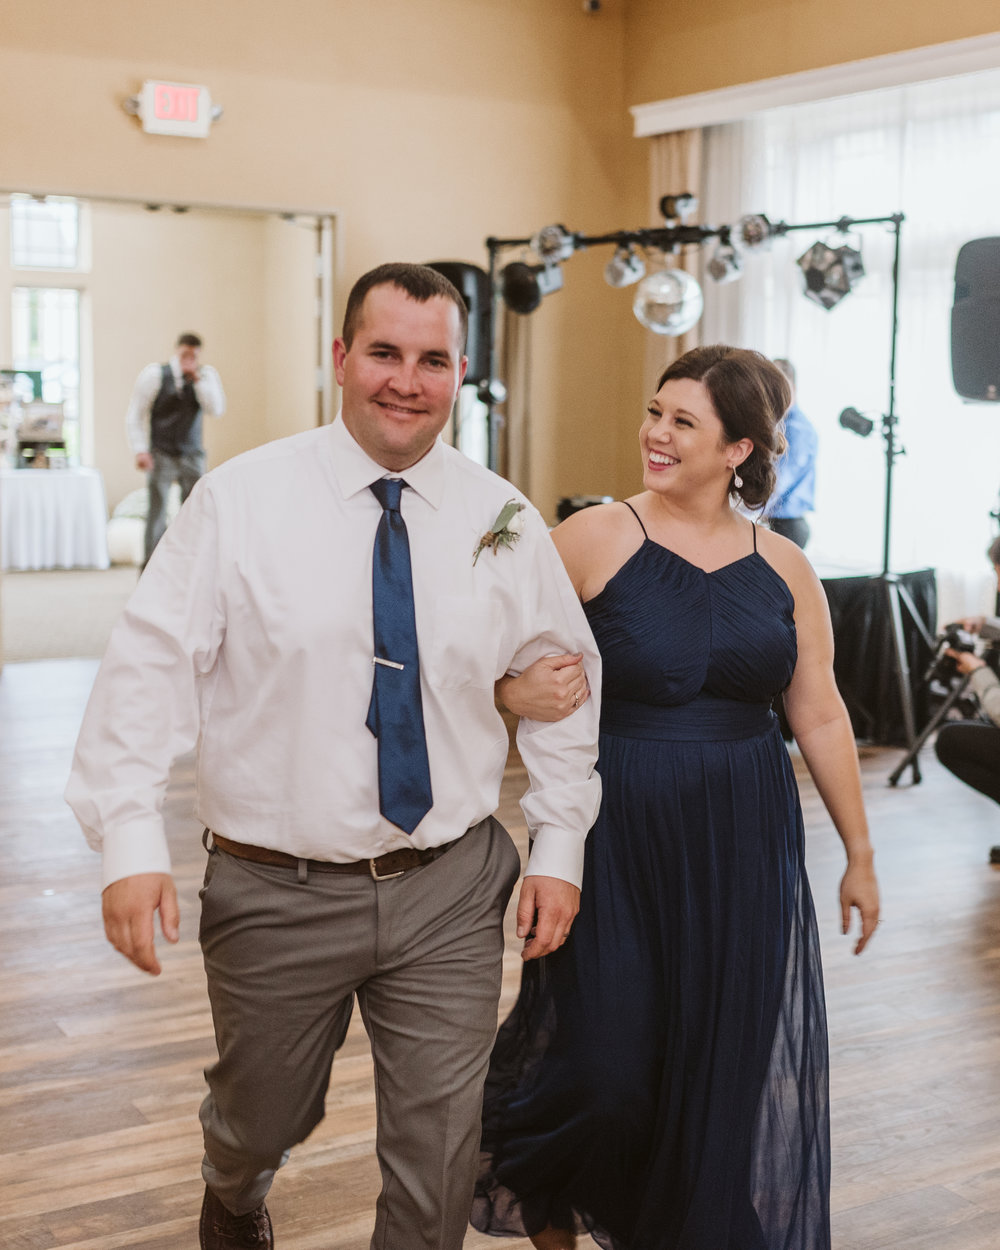 Creamery_201_Fort_Atkinson_wedding_Gavyn_Taylor_Photo_0937.jpg